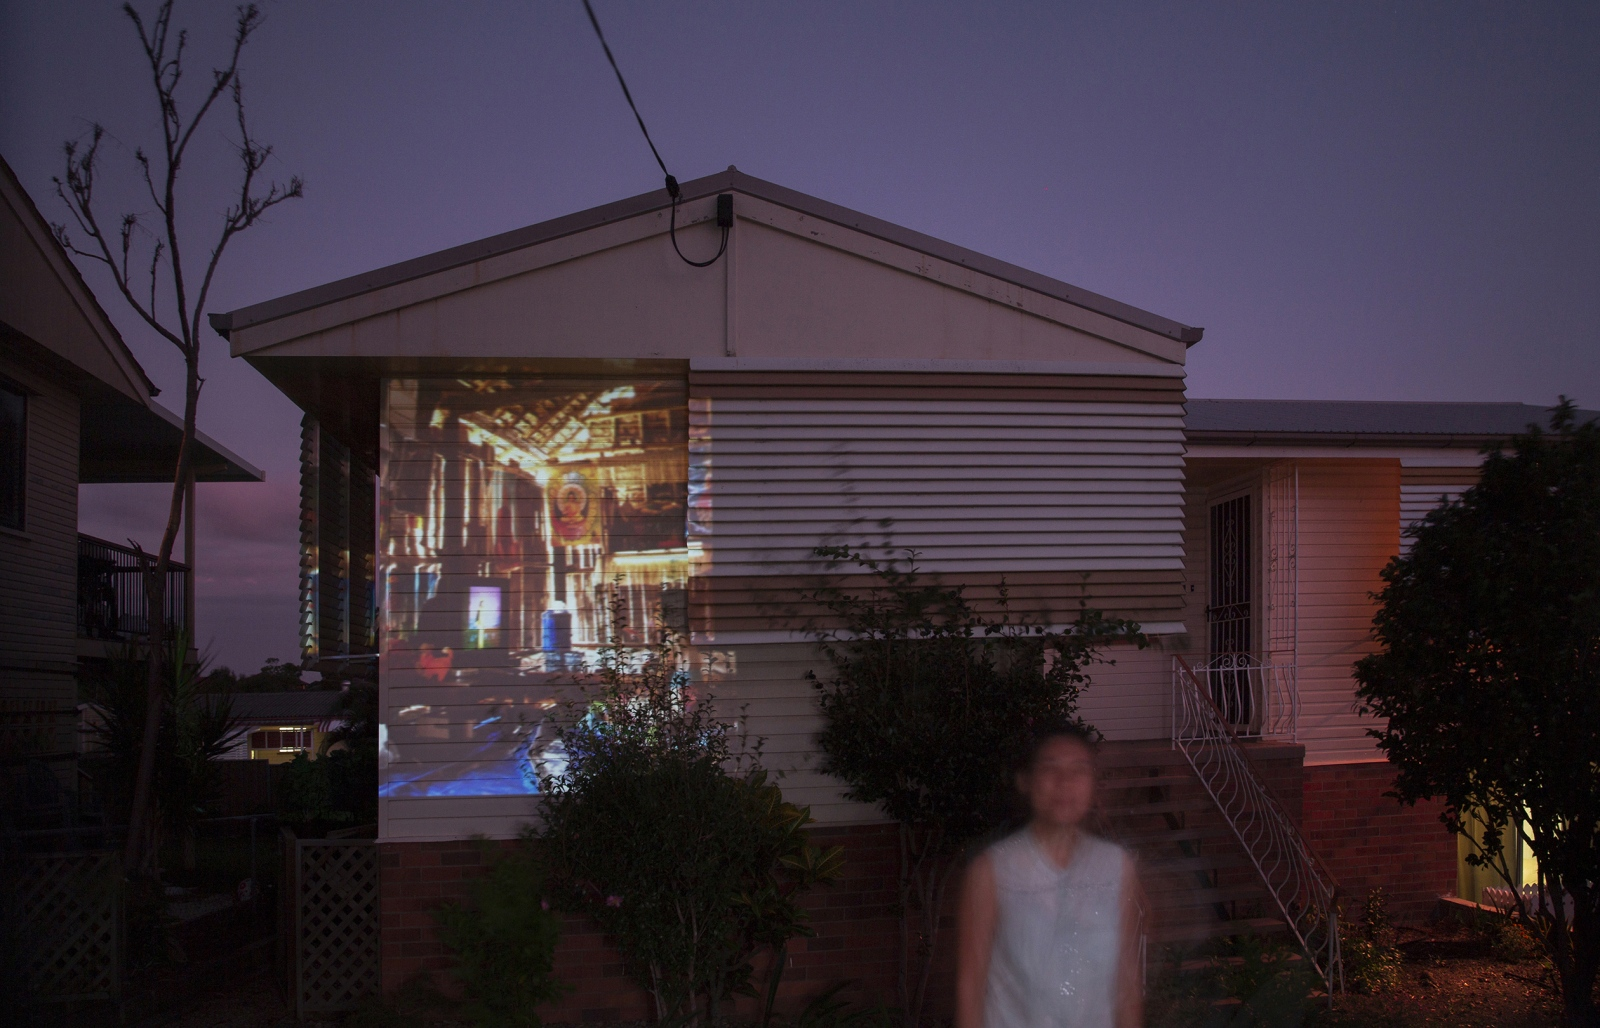 A projection of the inside of a house in Mae La refugee camp. This 'temporary' camp was established in 1984 and currently still holds over 50,000 refugees. This image has been projected onto the home of a well established Karen family now residing in Brisbane. QUEENSLAND, AUSTRALIA, 2016.